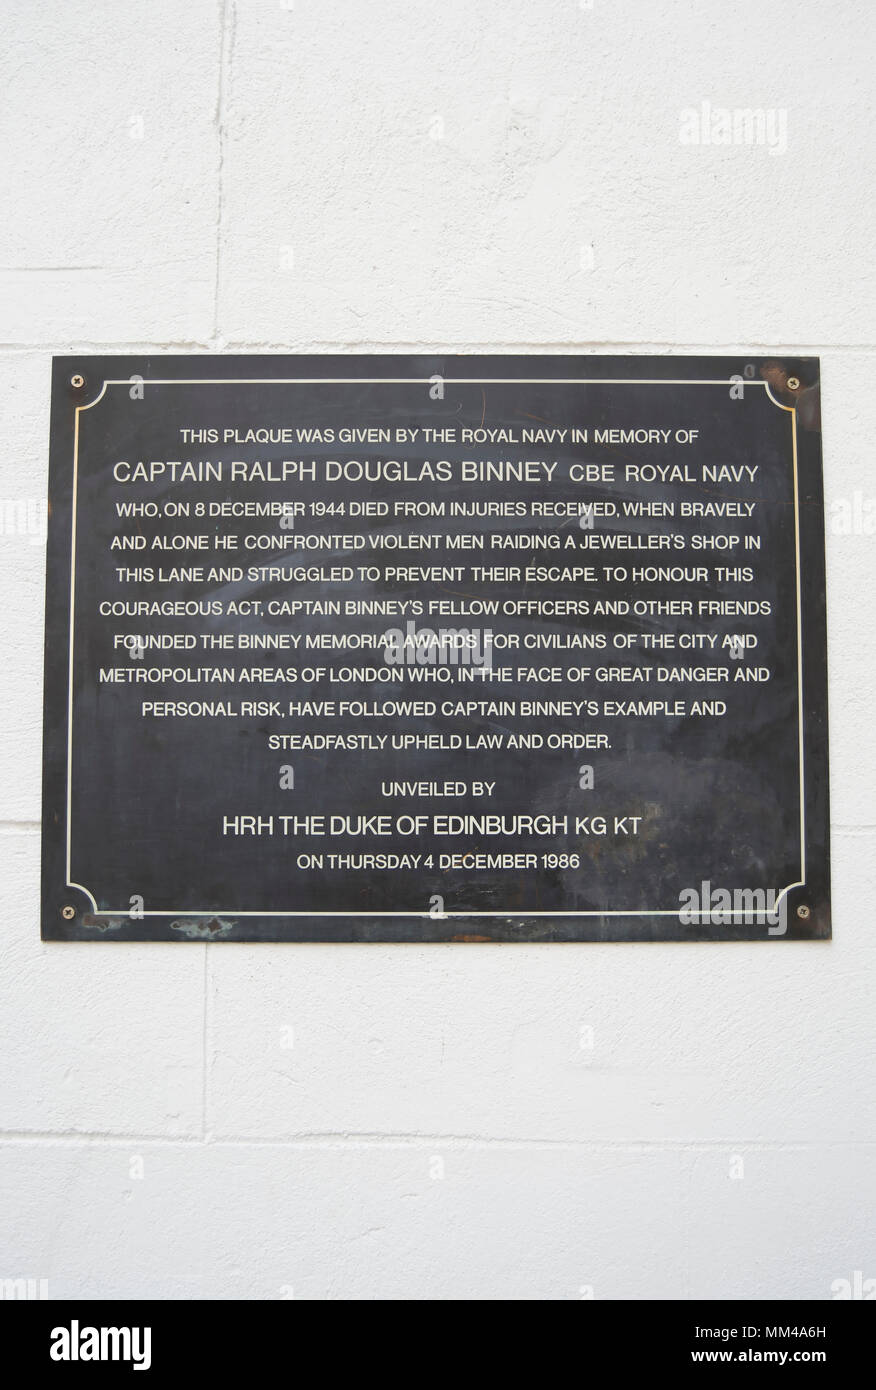 plaque in the city of london noting the bravery of naval captain ralph douglas binney in attempting to thwart a robbery and dying of injuries received - Stock Image